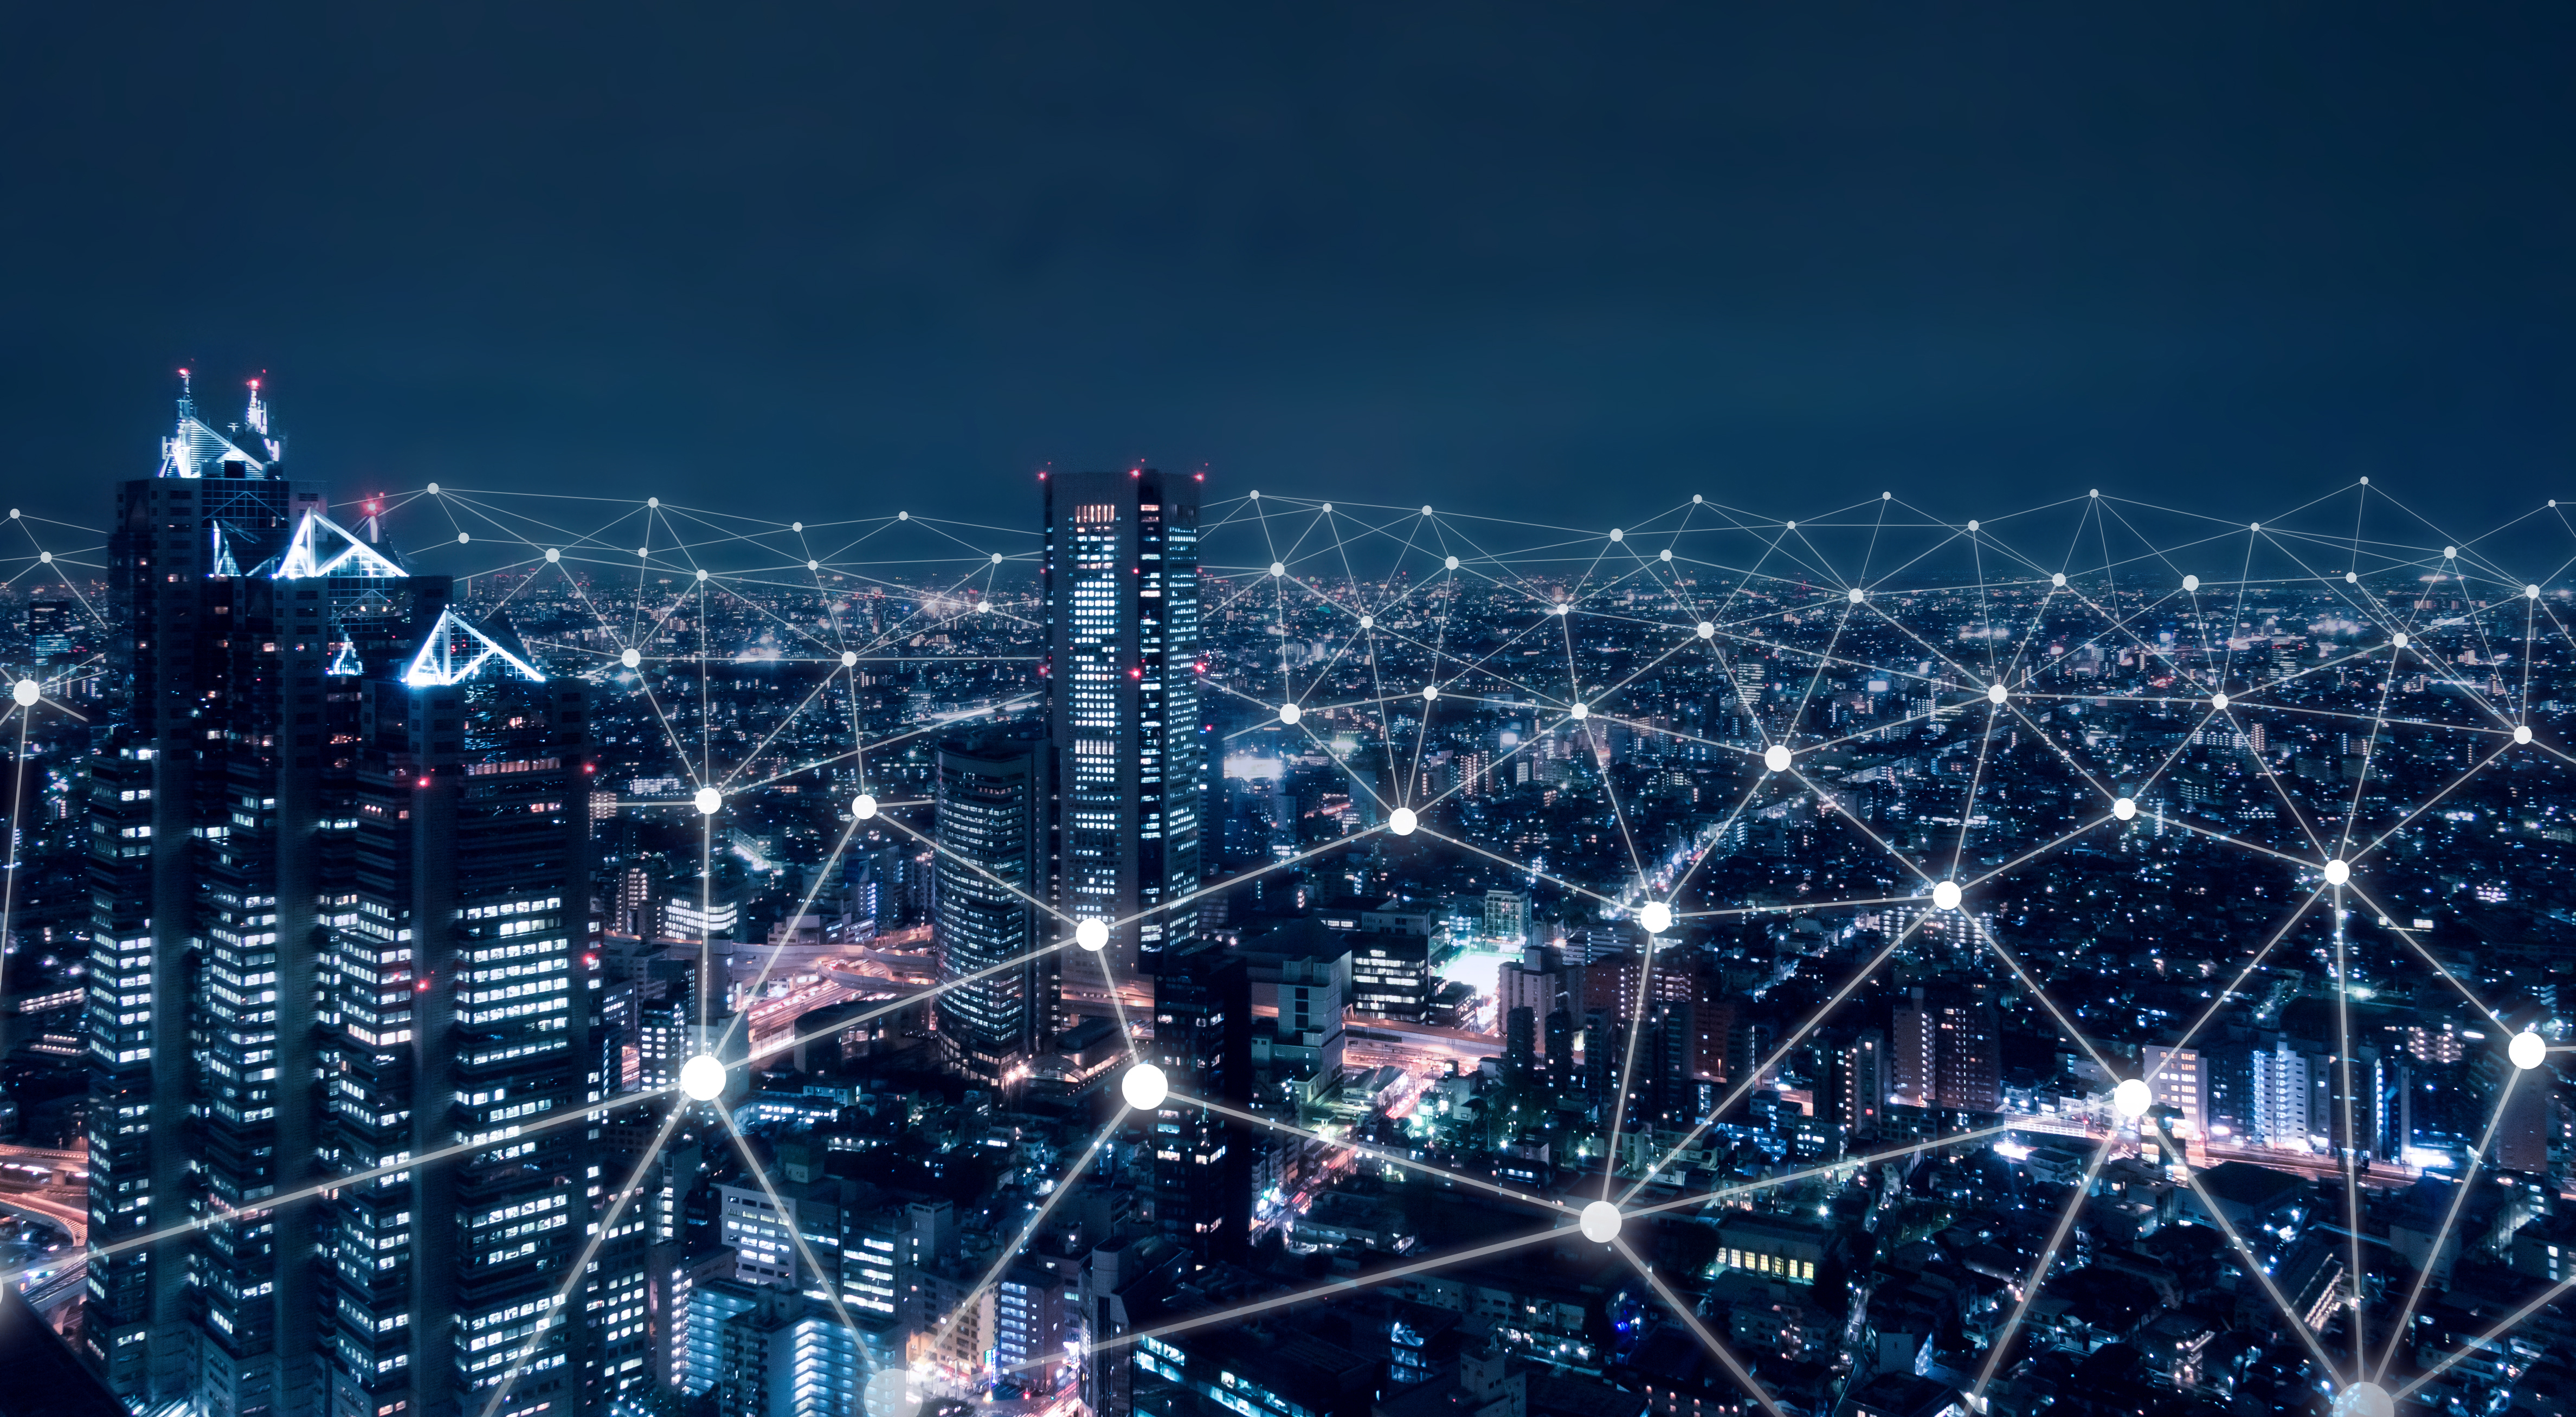 Telecommunication network above city, wireless mobile internet technology for smart grid or 5G LTE data connection, concept about IoT, global business, fintech, blockchain